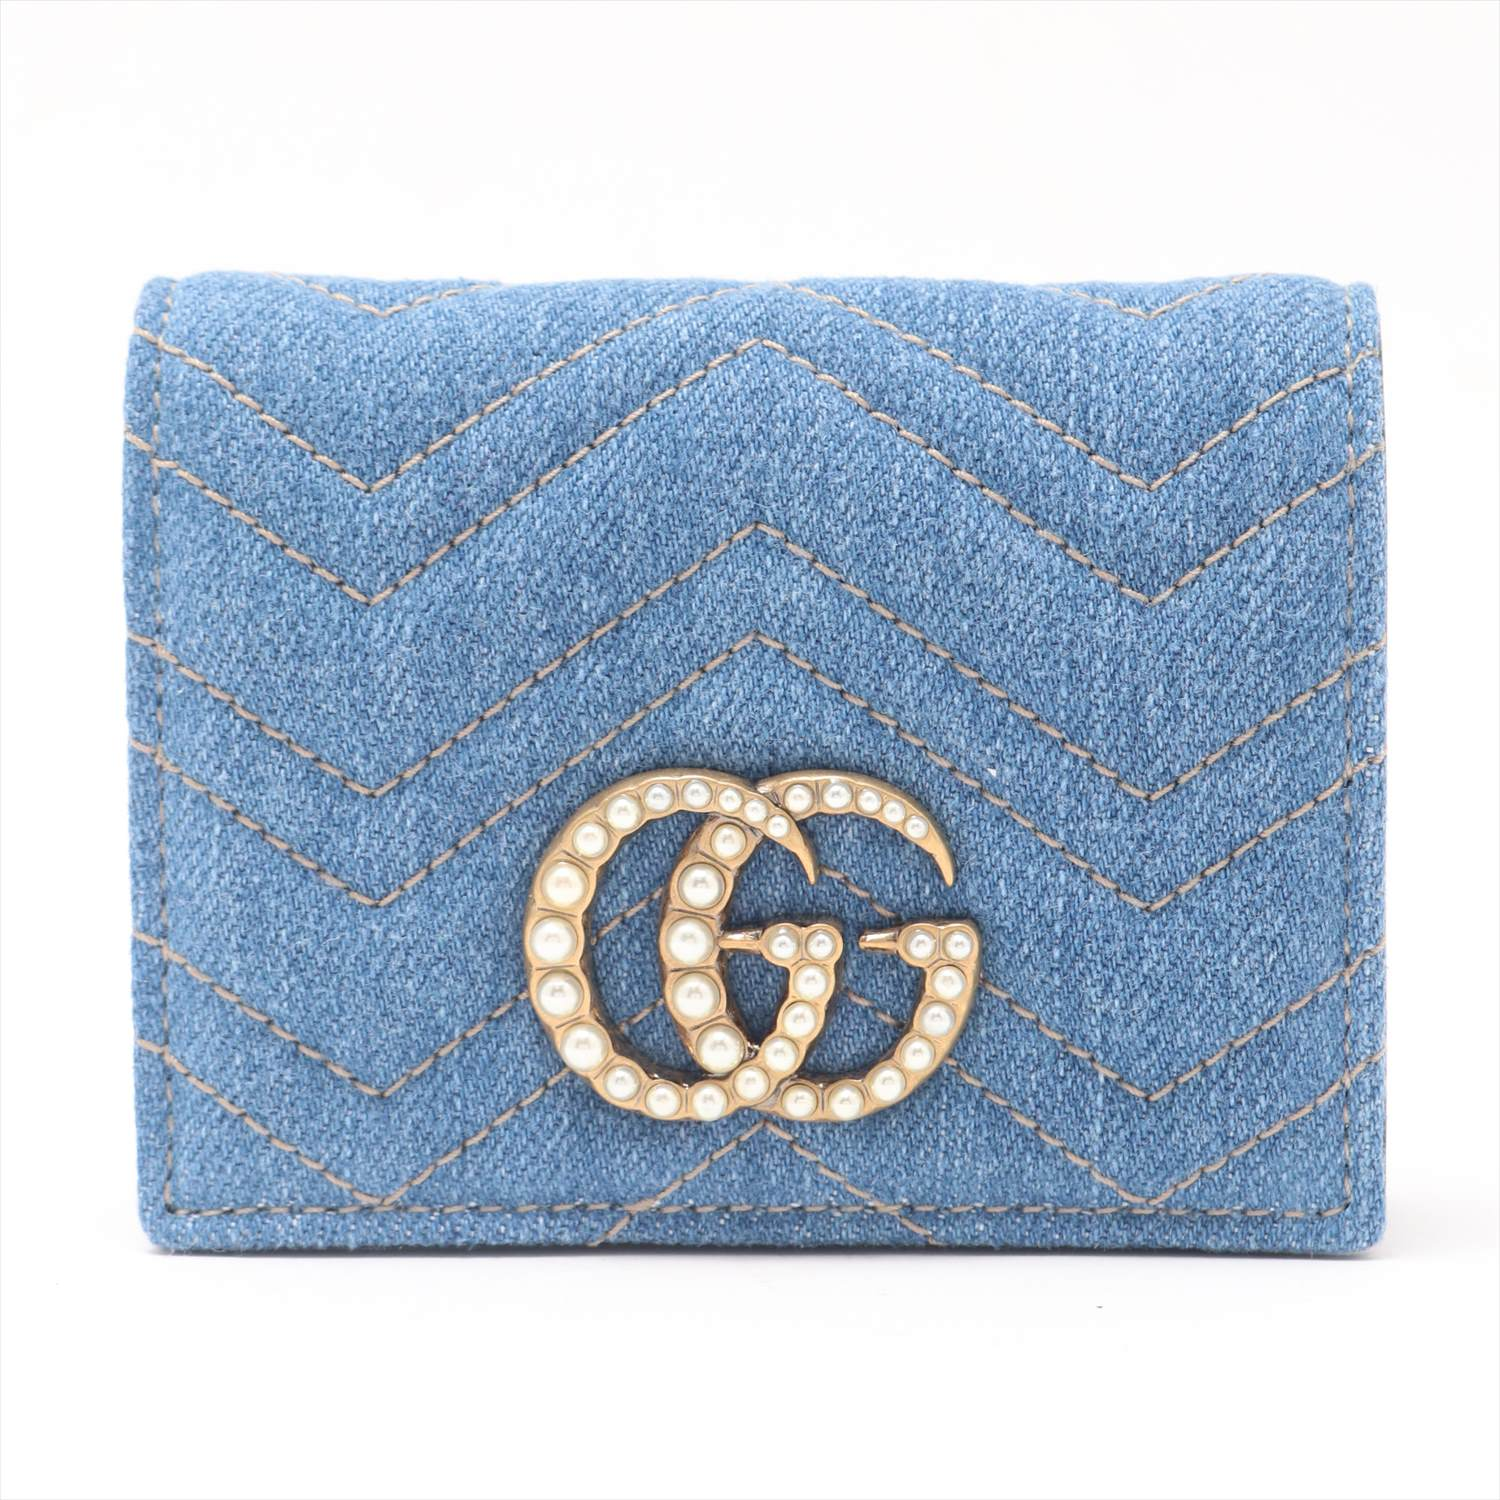 [Used goods] Gucci GG Marmont denim purse light blue two-fold 466 492 - 525 040